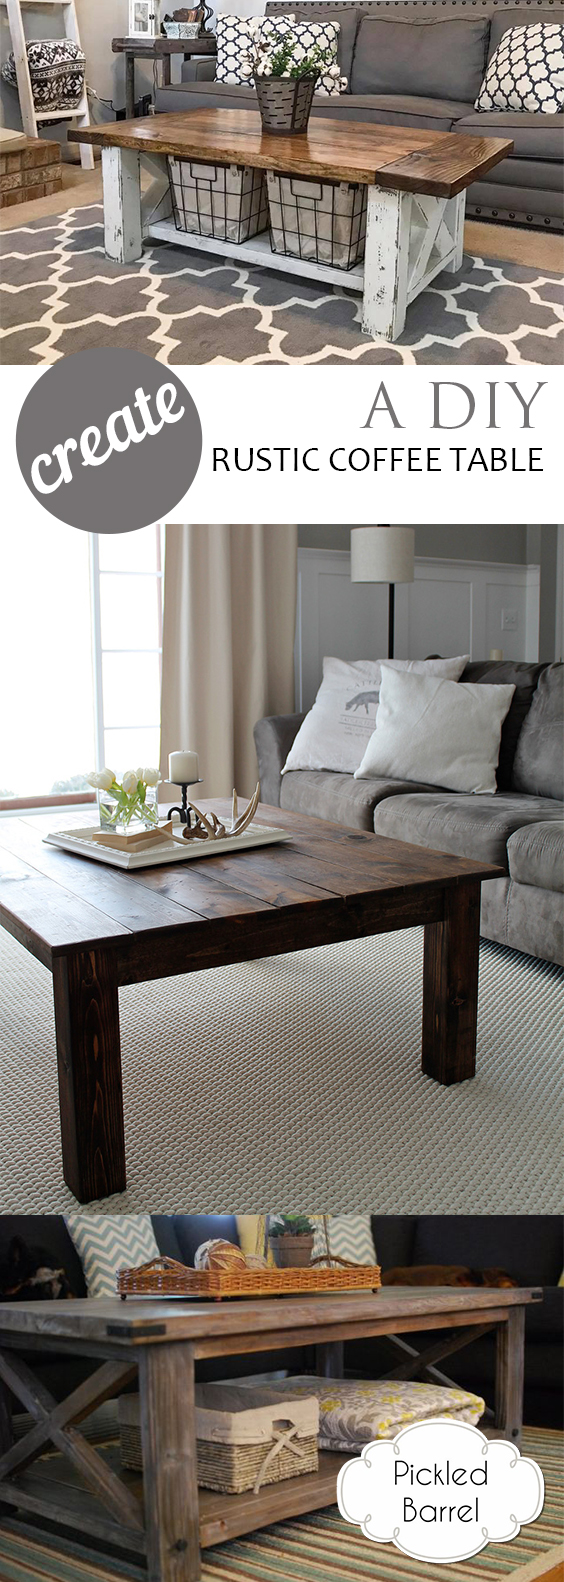 Create A Diy Rustic Coffee Table Pickled Barrel